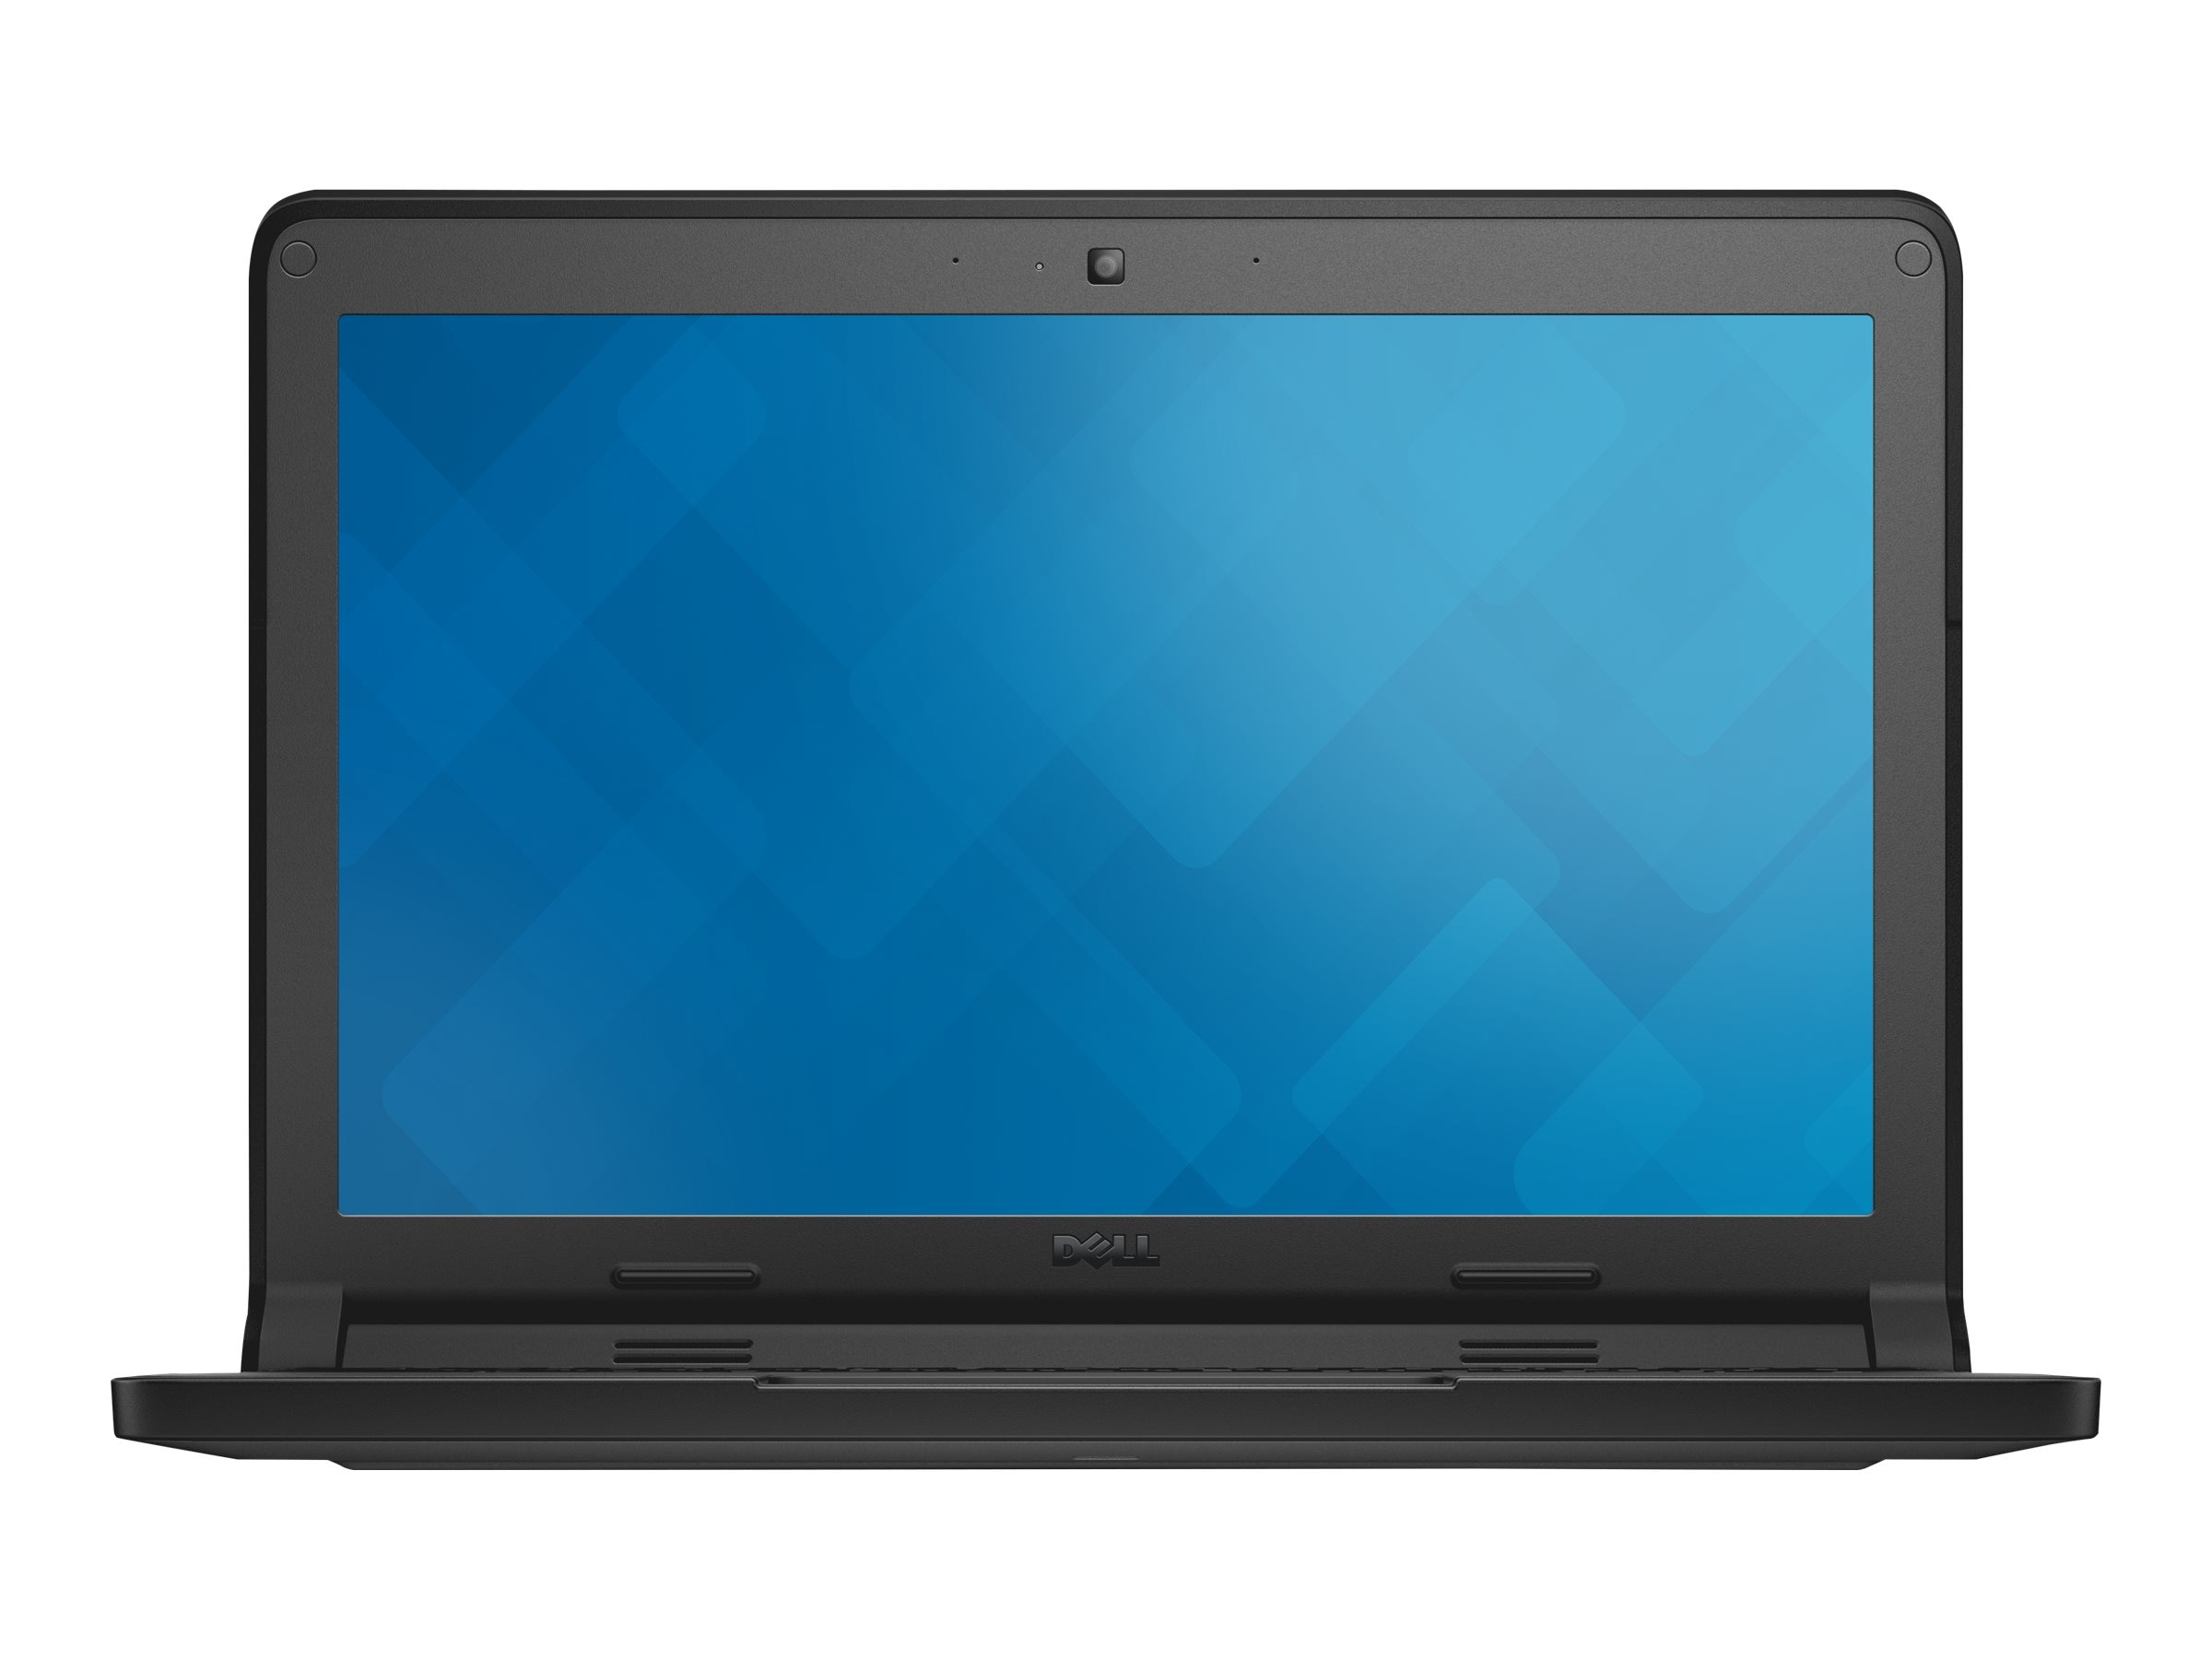 Dell XDGJH Image 2